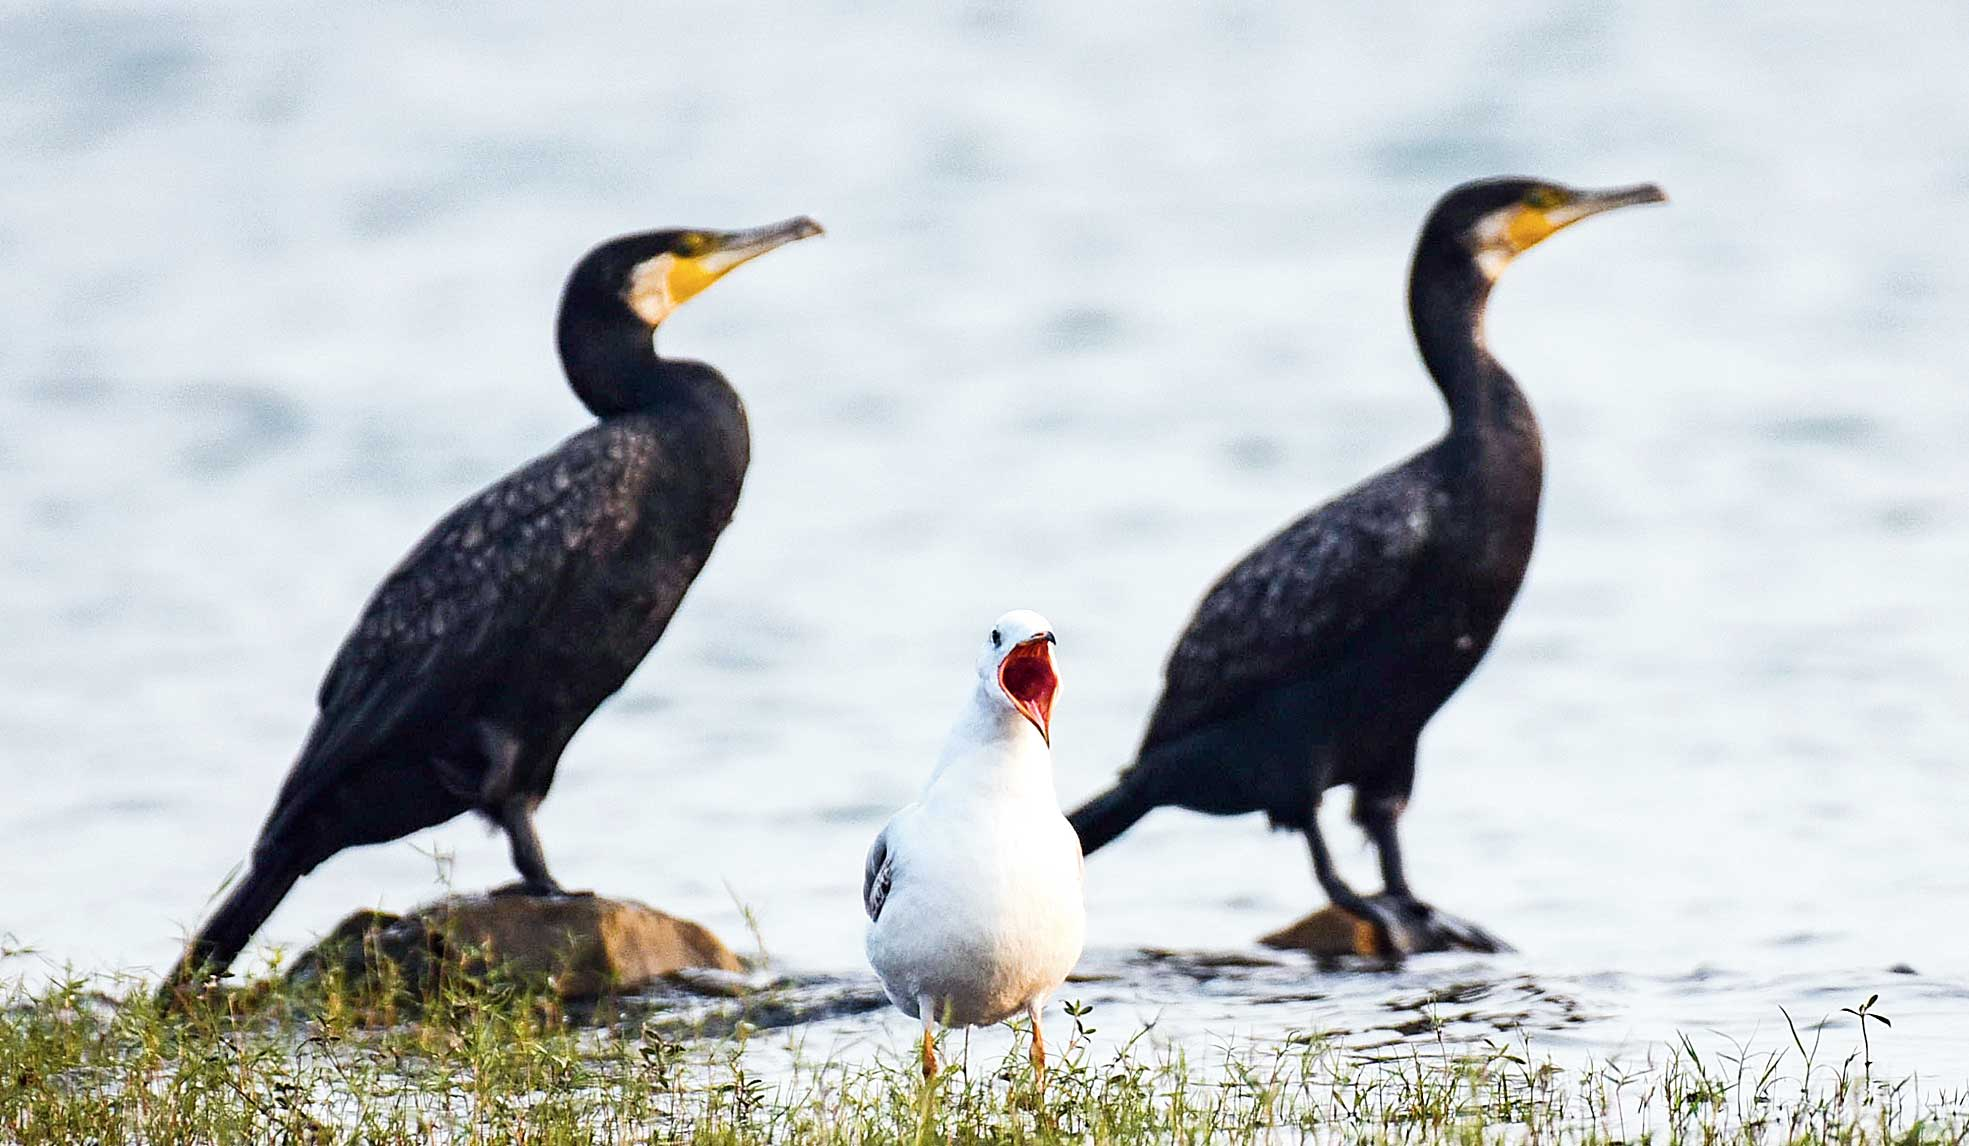 Two greater cormorants keep a ring-billed gull company at Maithon Dam in Dhanbad on Thursday.